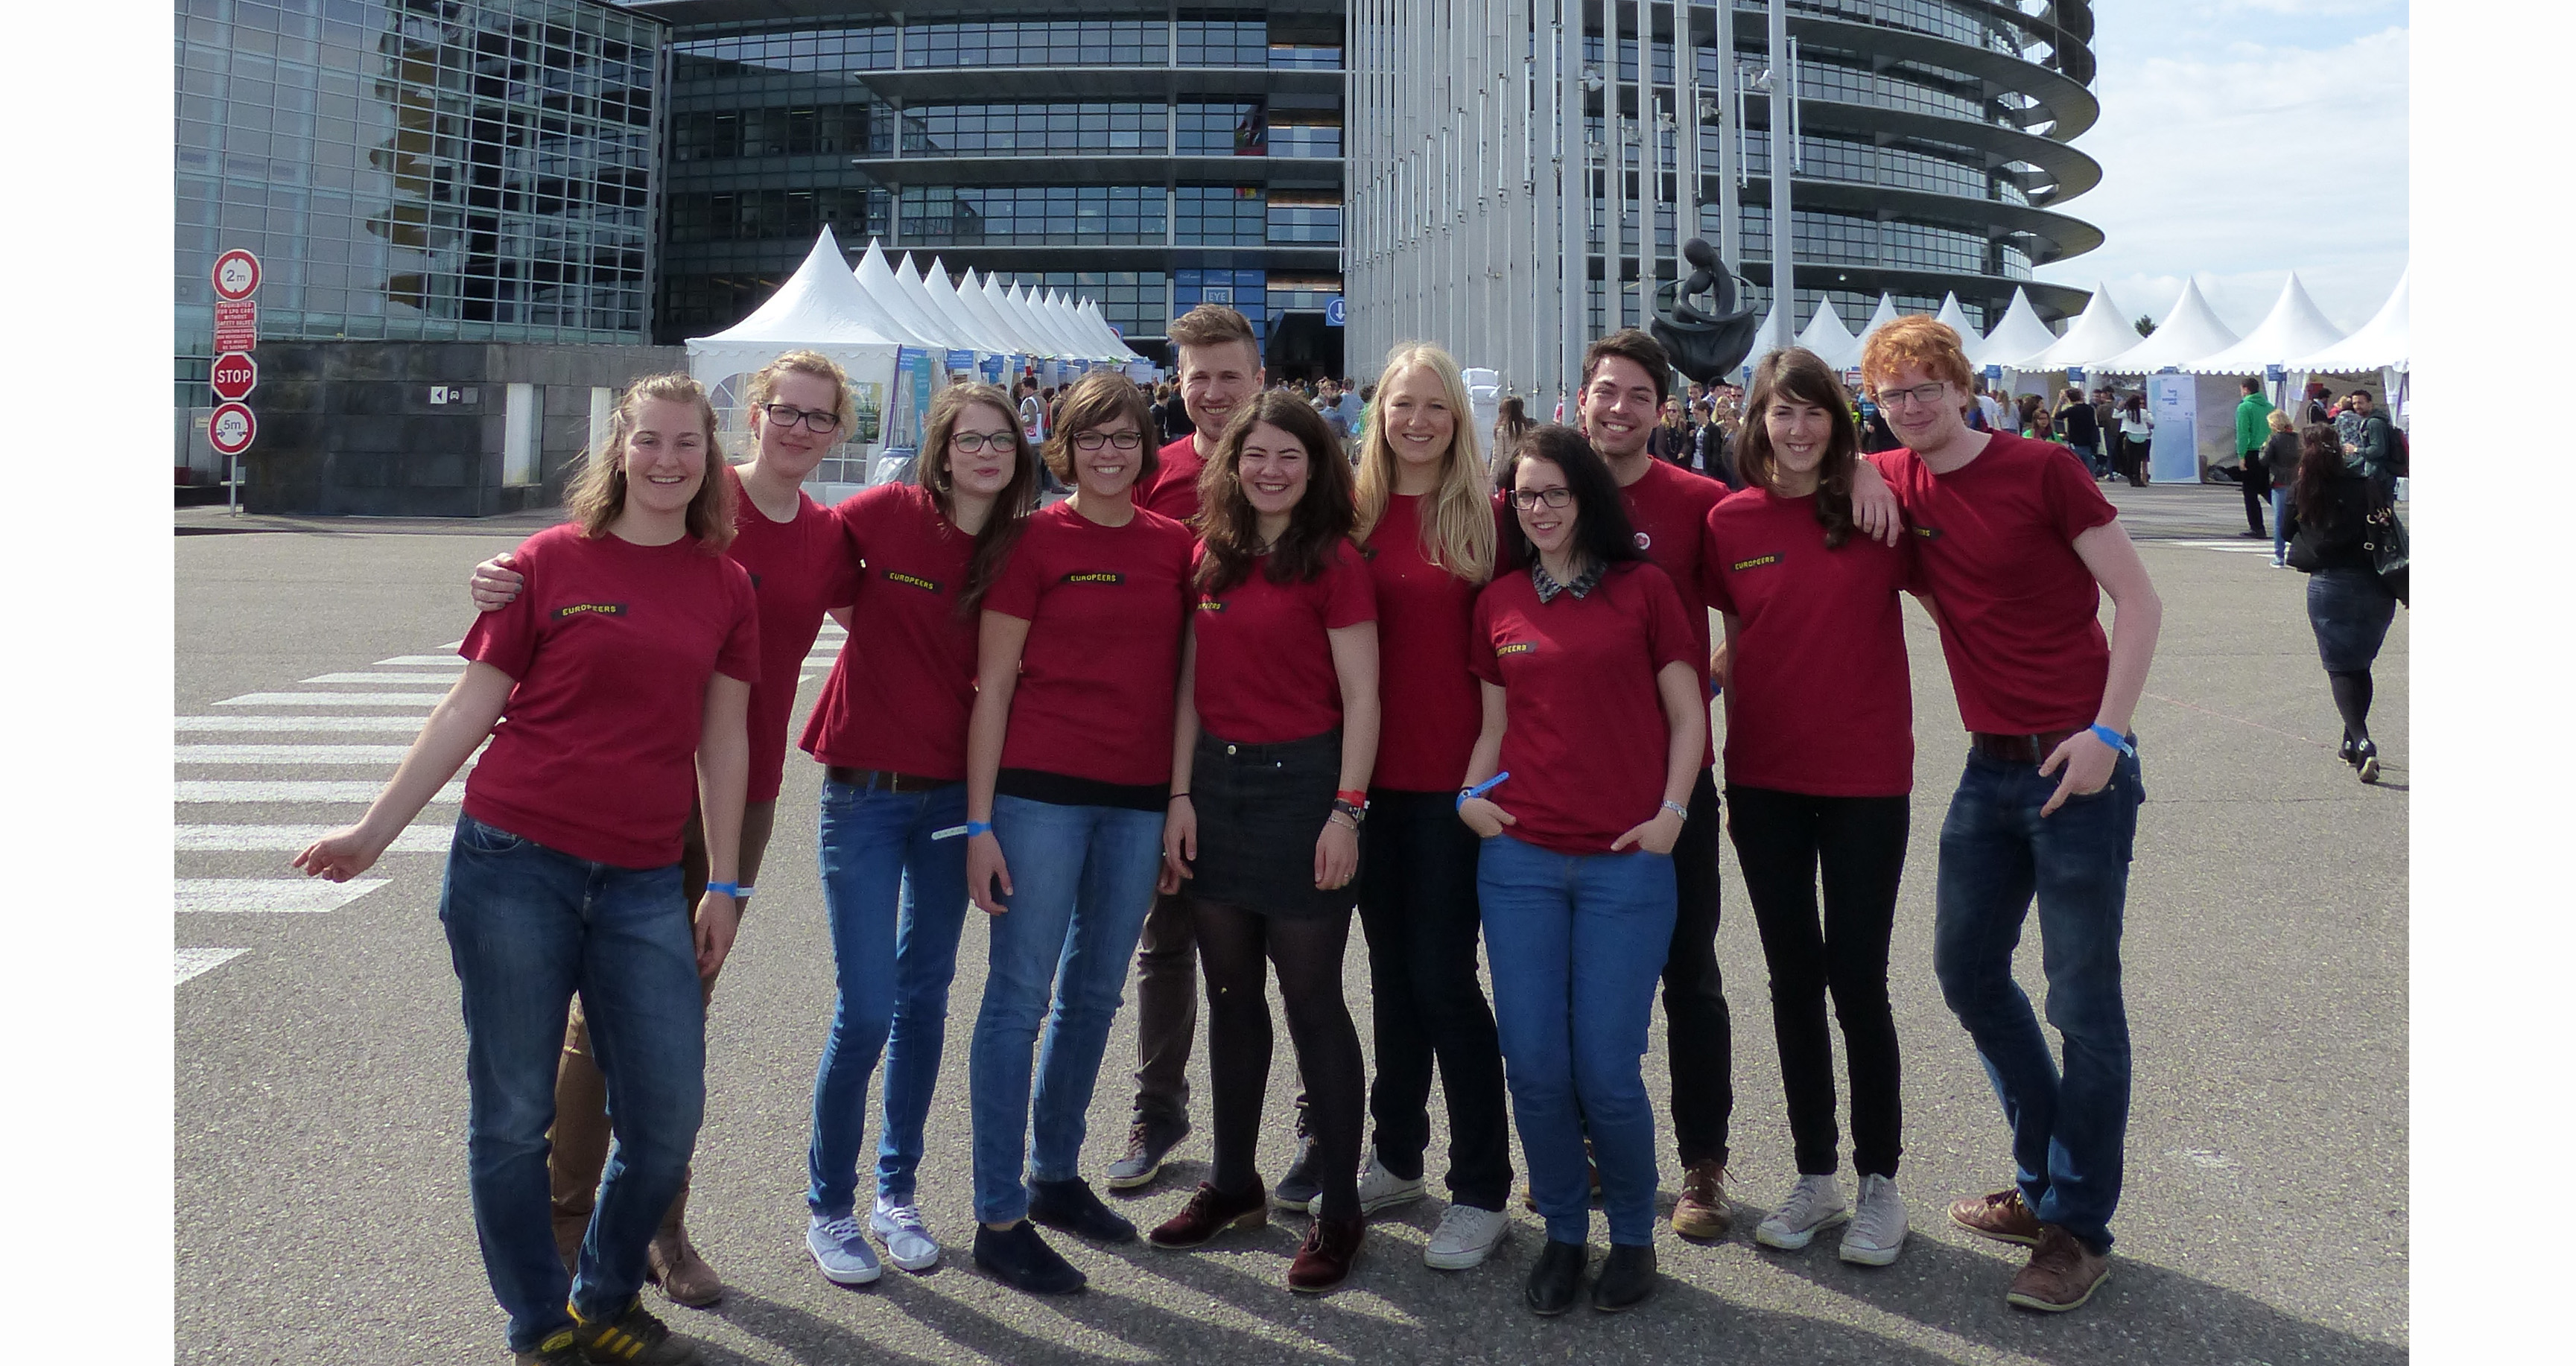 EuroPeers in front of the European Parliament in Strasbourg (© EuroPeers EYE 2014)